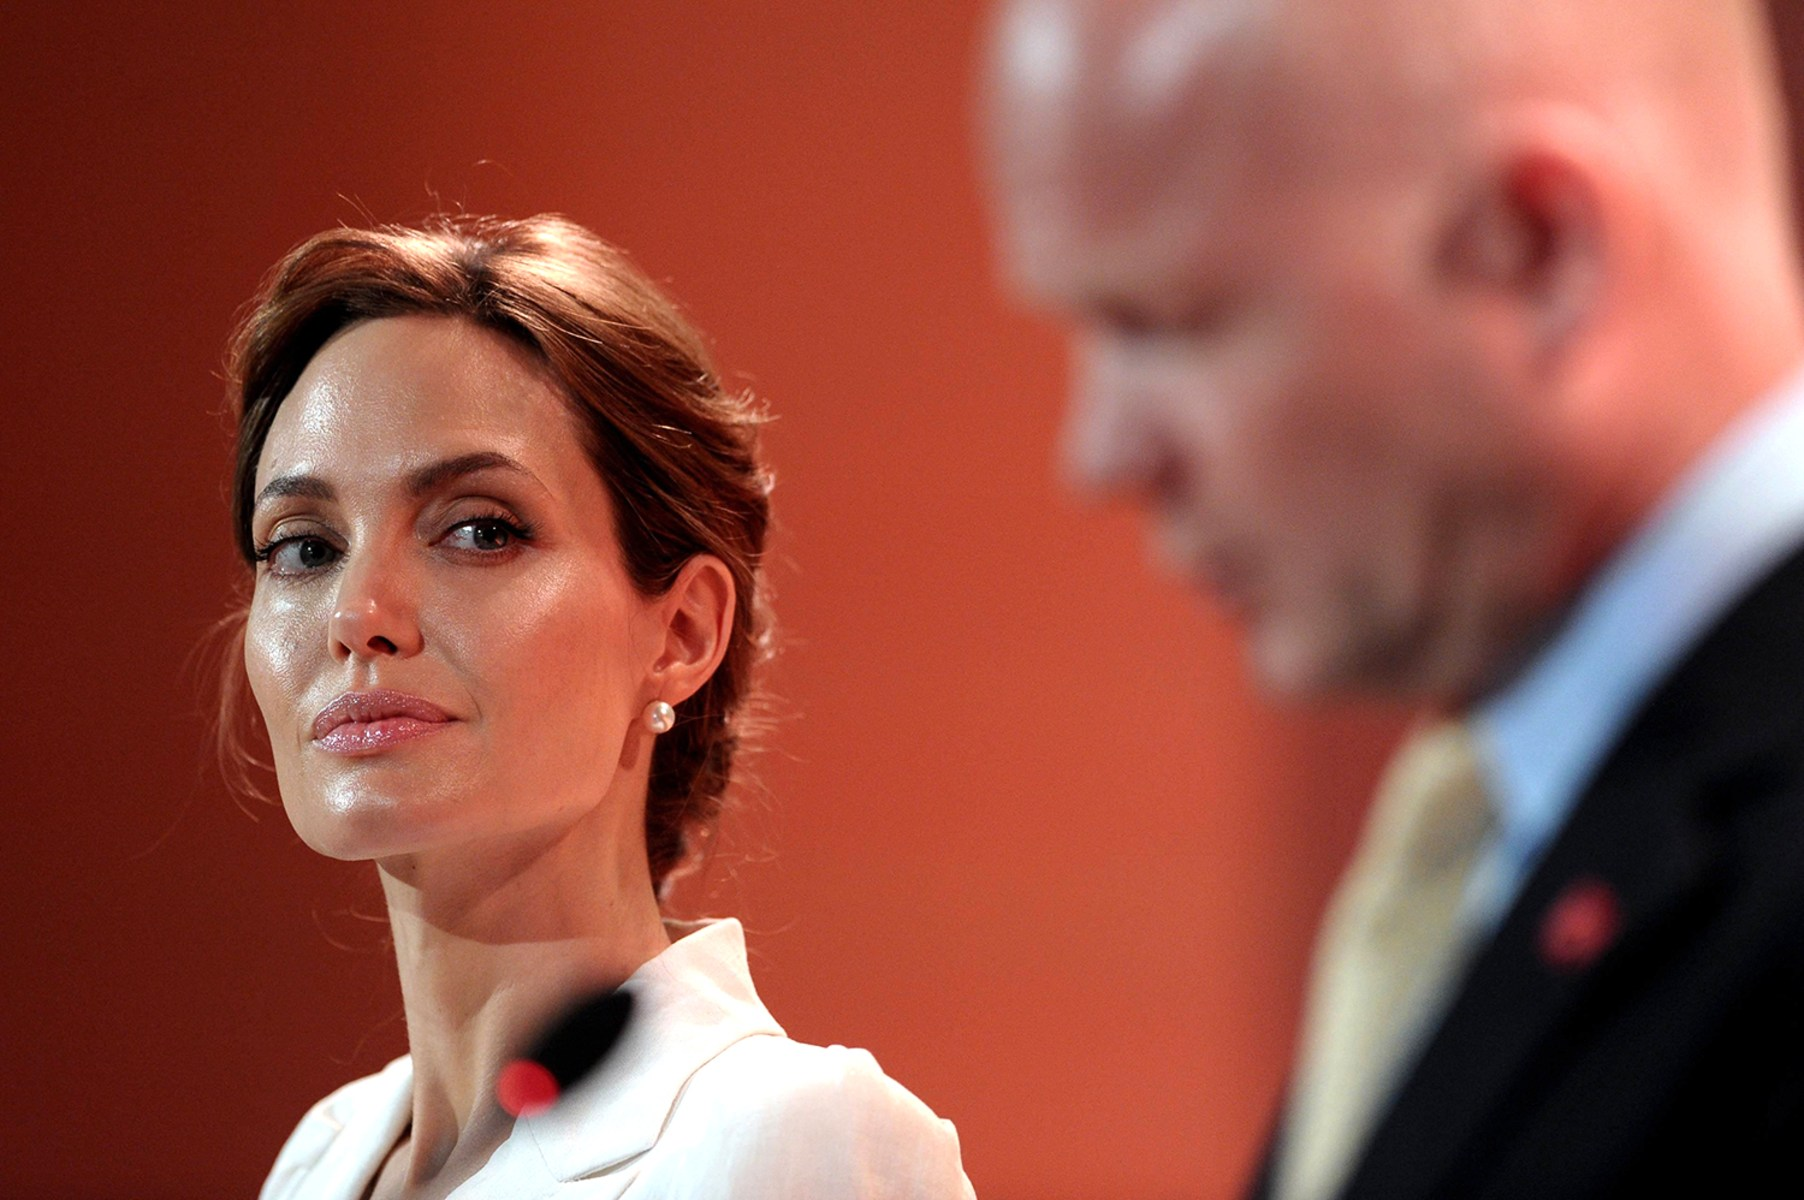 Image: Actress Angelina Jolie and British Foreign Secretary William Hague make their opening speeches at a global summit to end sexual violence in conflict, in London